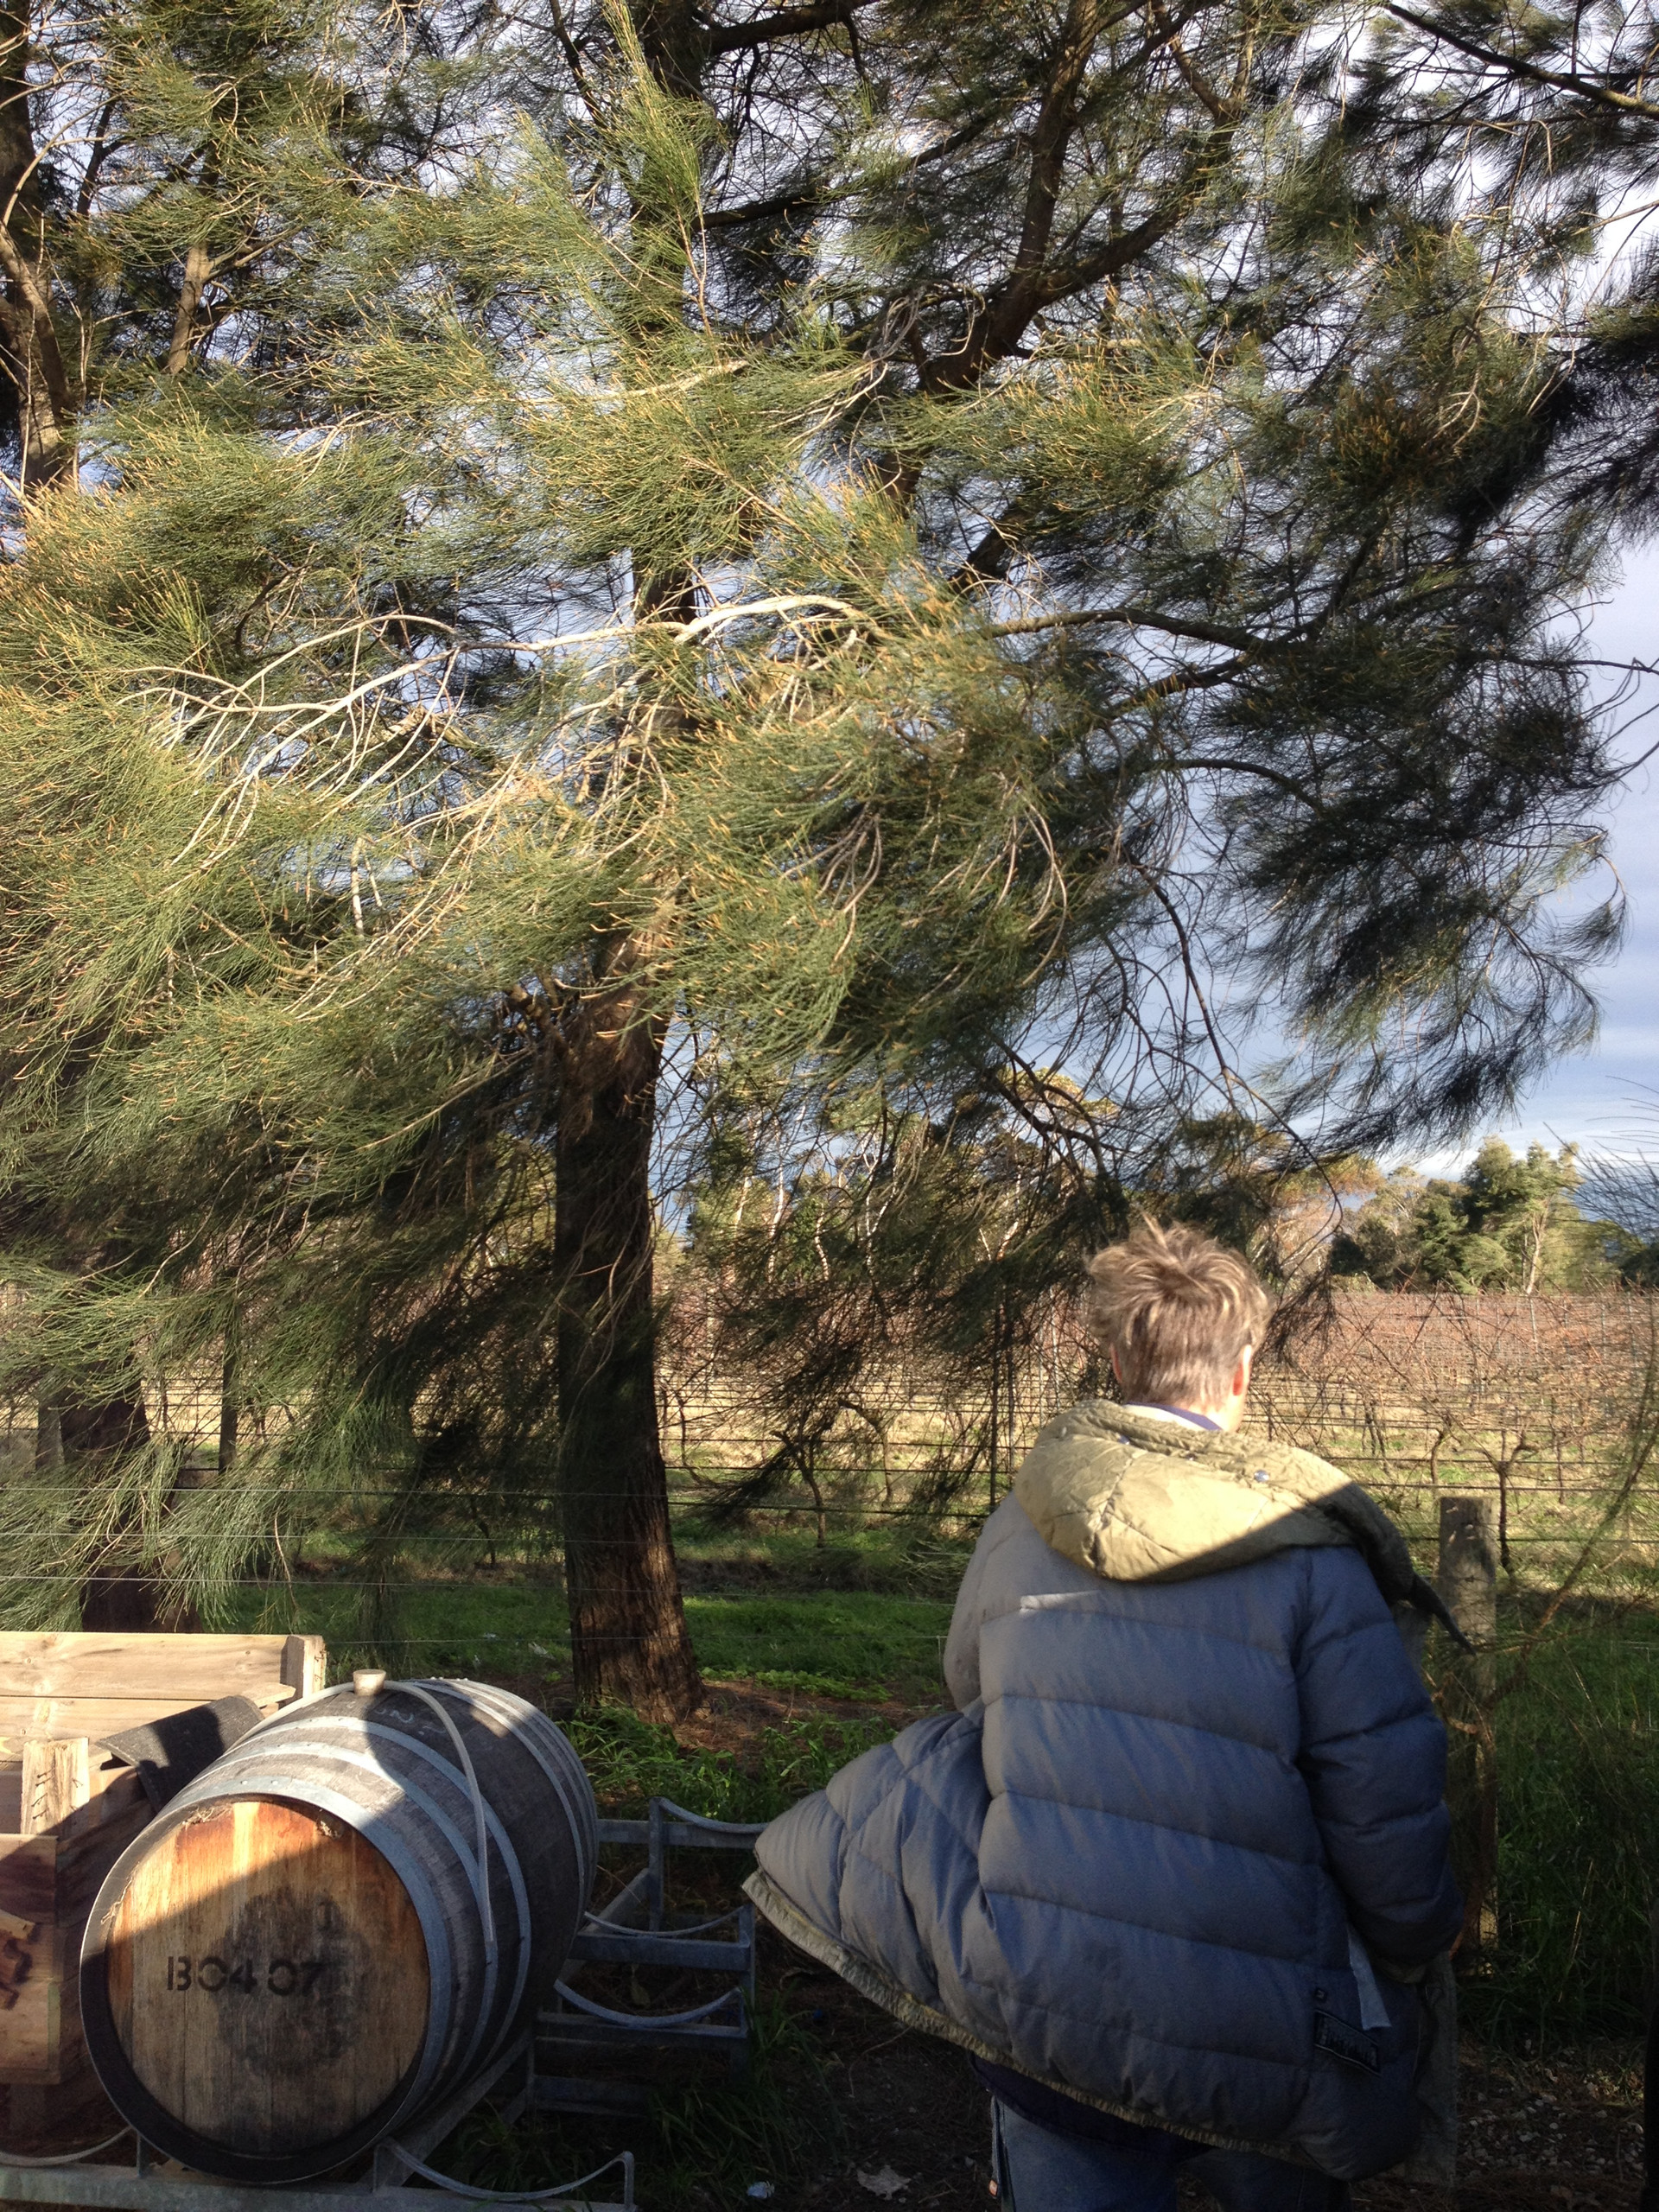 Touring the vineyard with the winemaker and owner on the Mornington Peninsula in Victoria